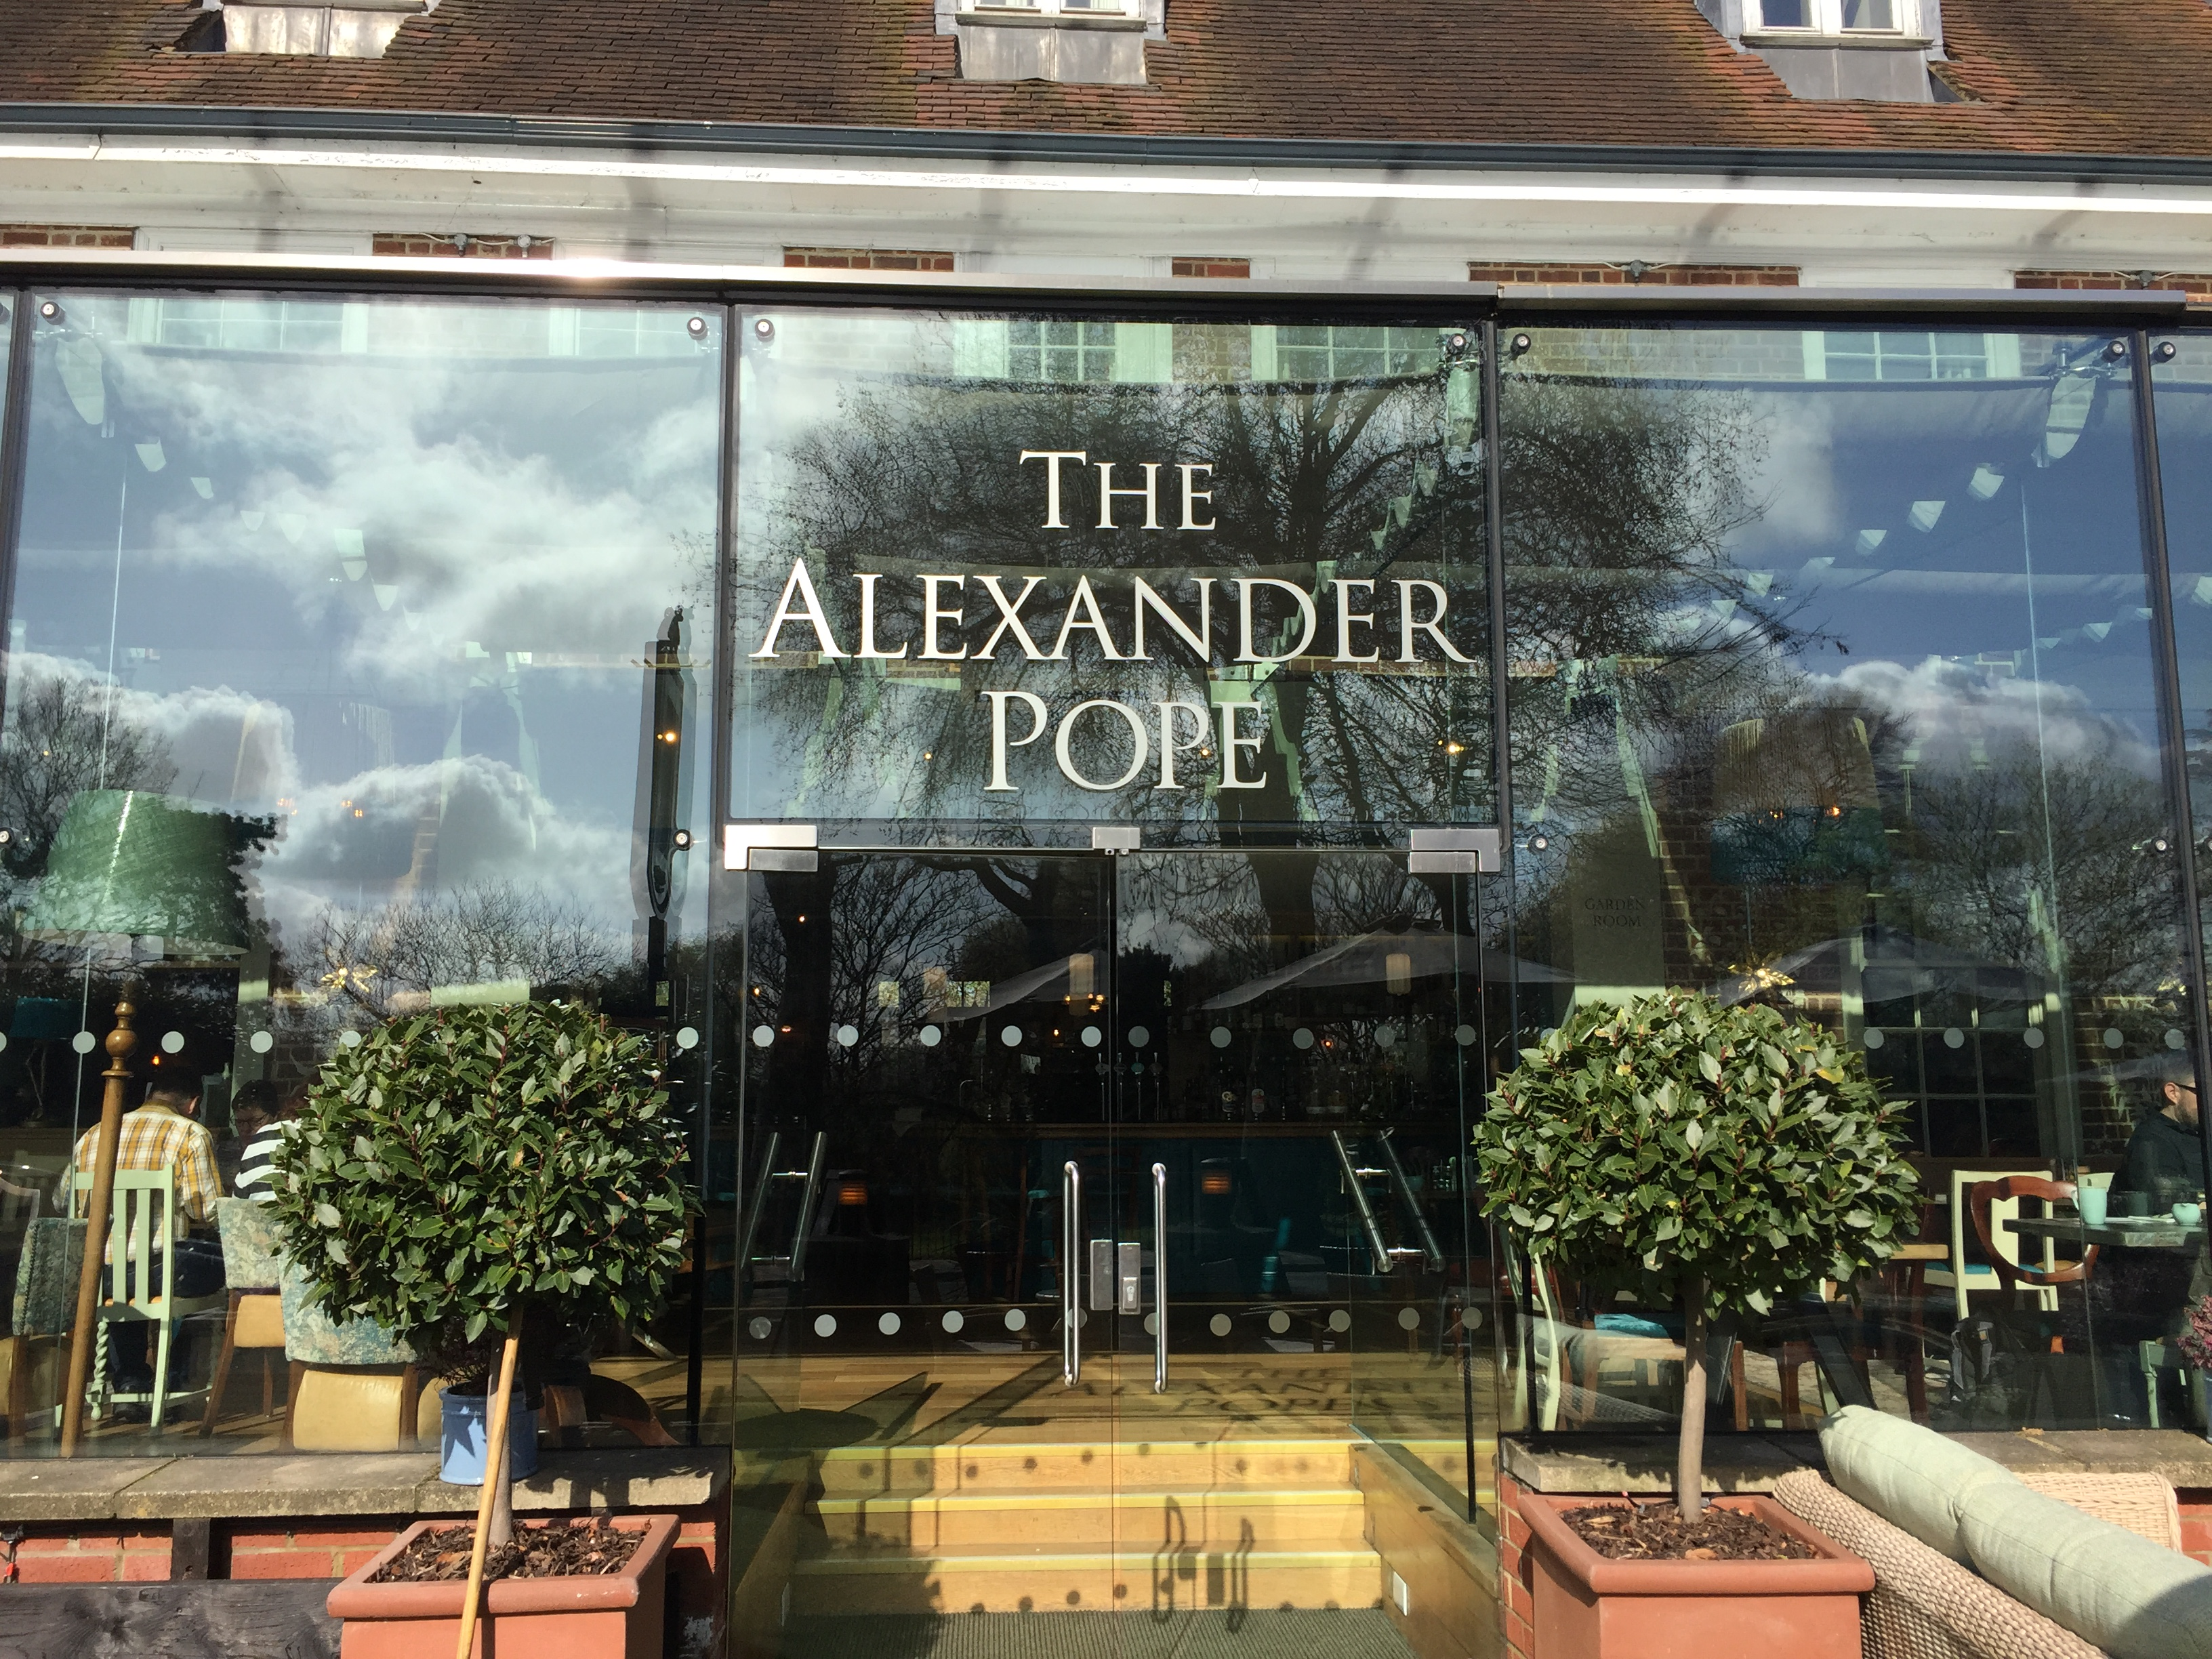 Alexander Pope Hotel in Twickenham, UK